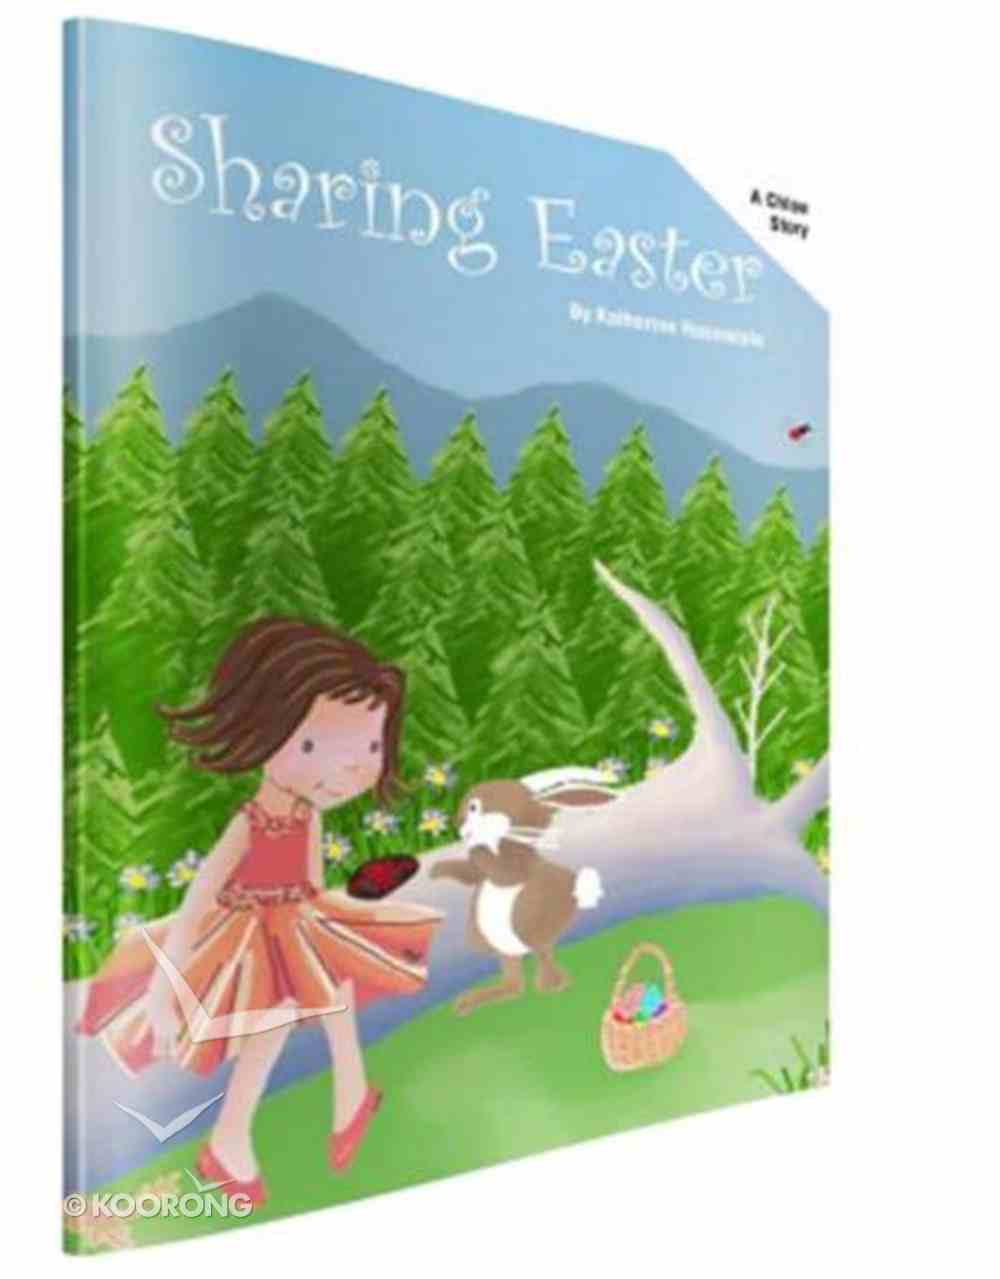 A Chloe Story: Sharing Easter Paperback